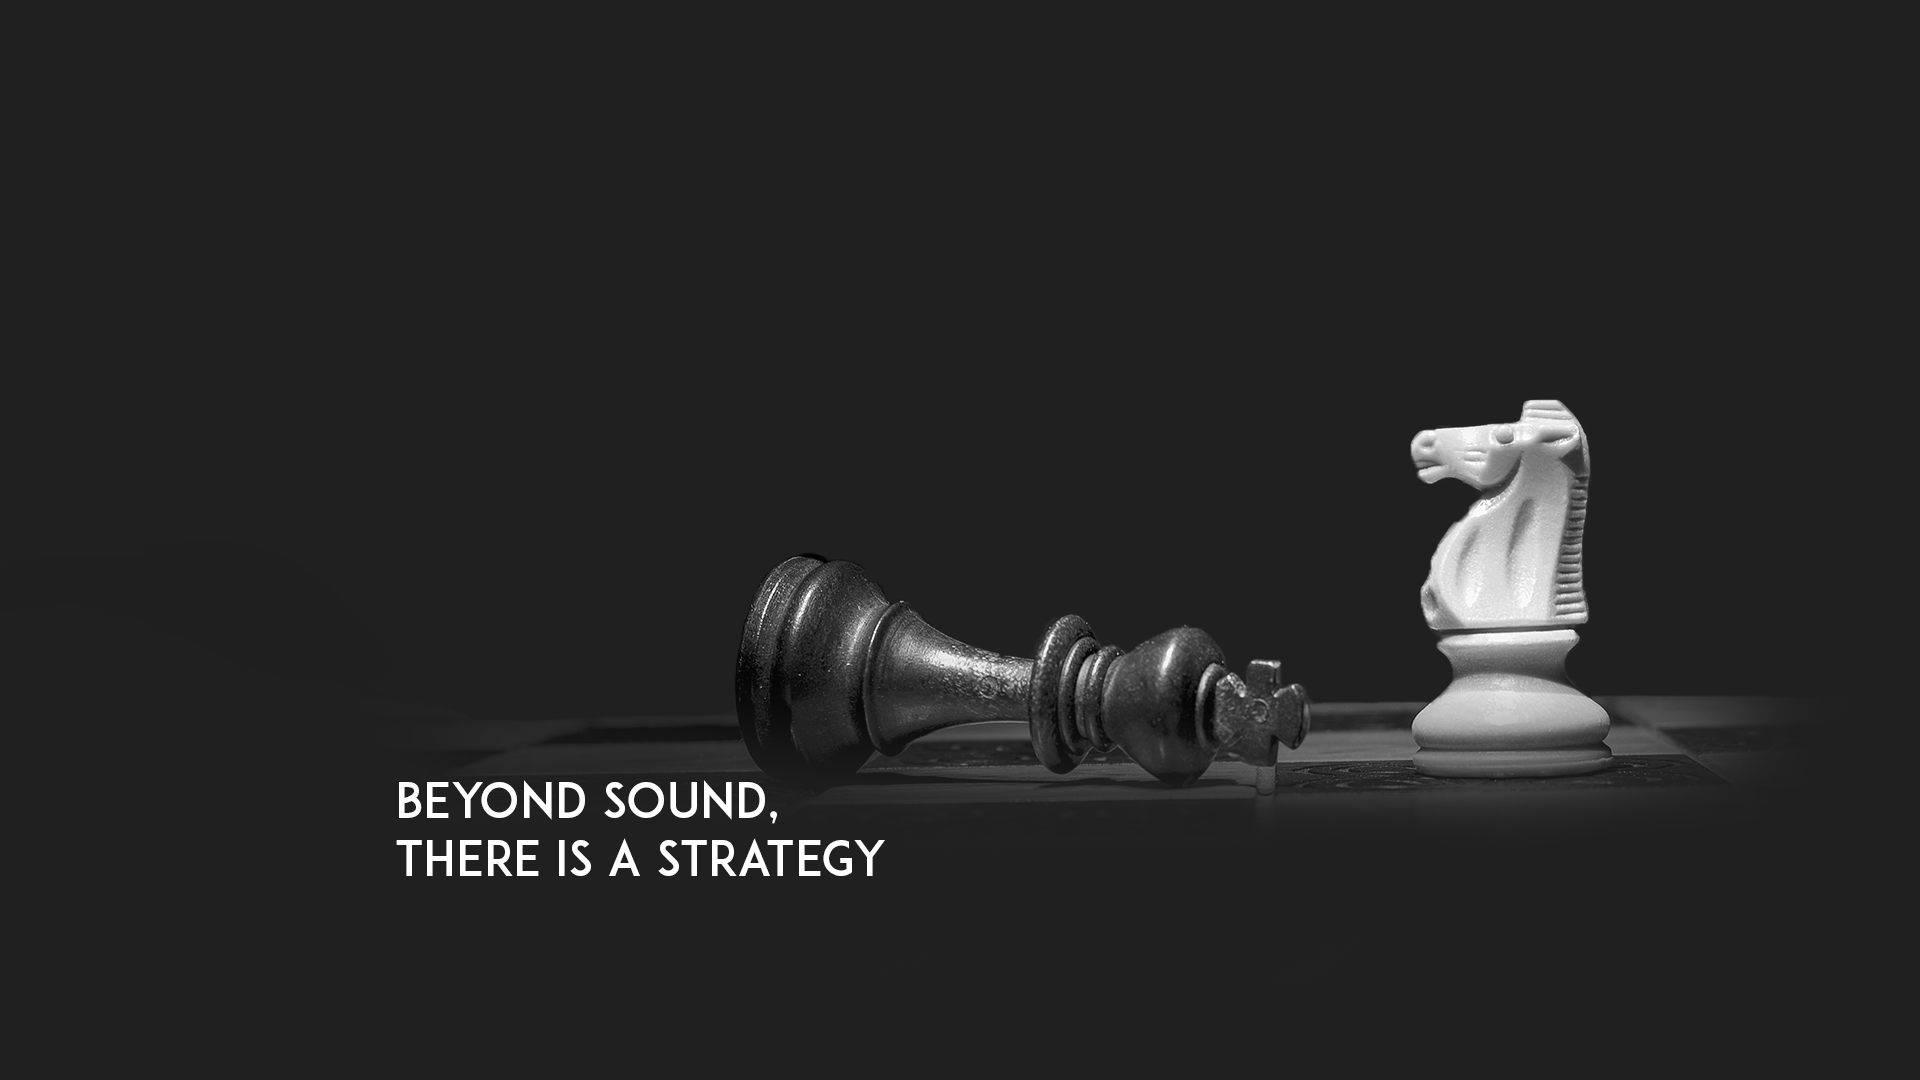 We make sonic branding based on your communication strategy